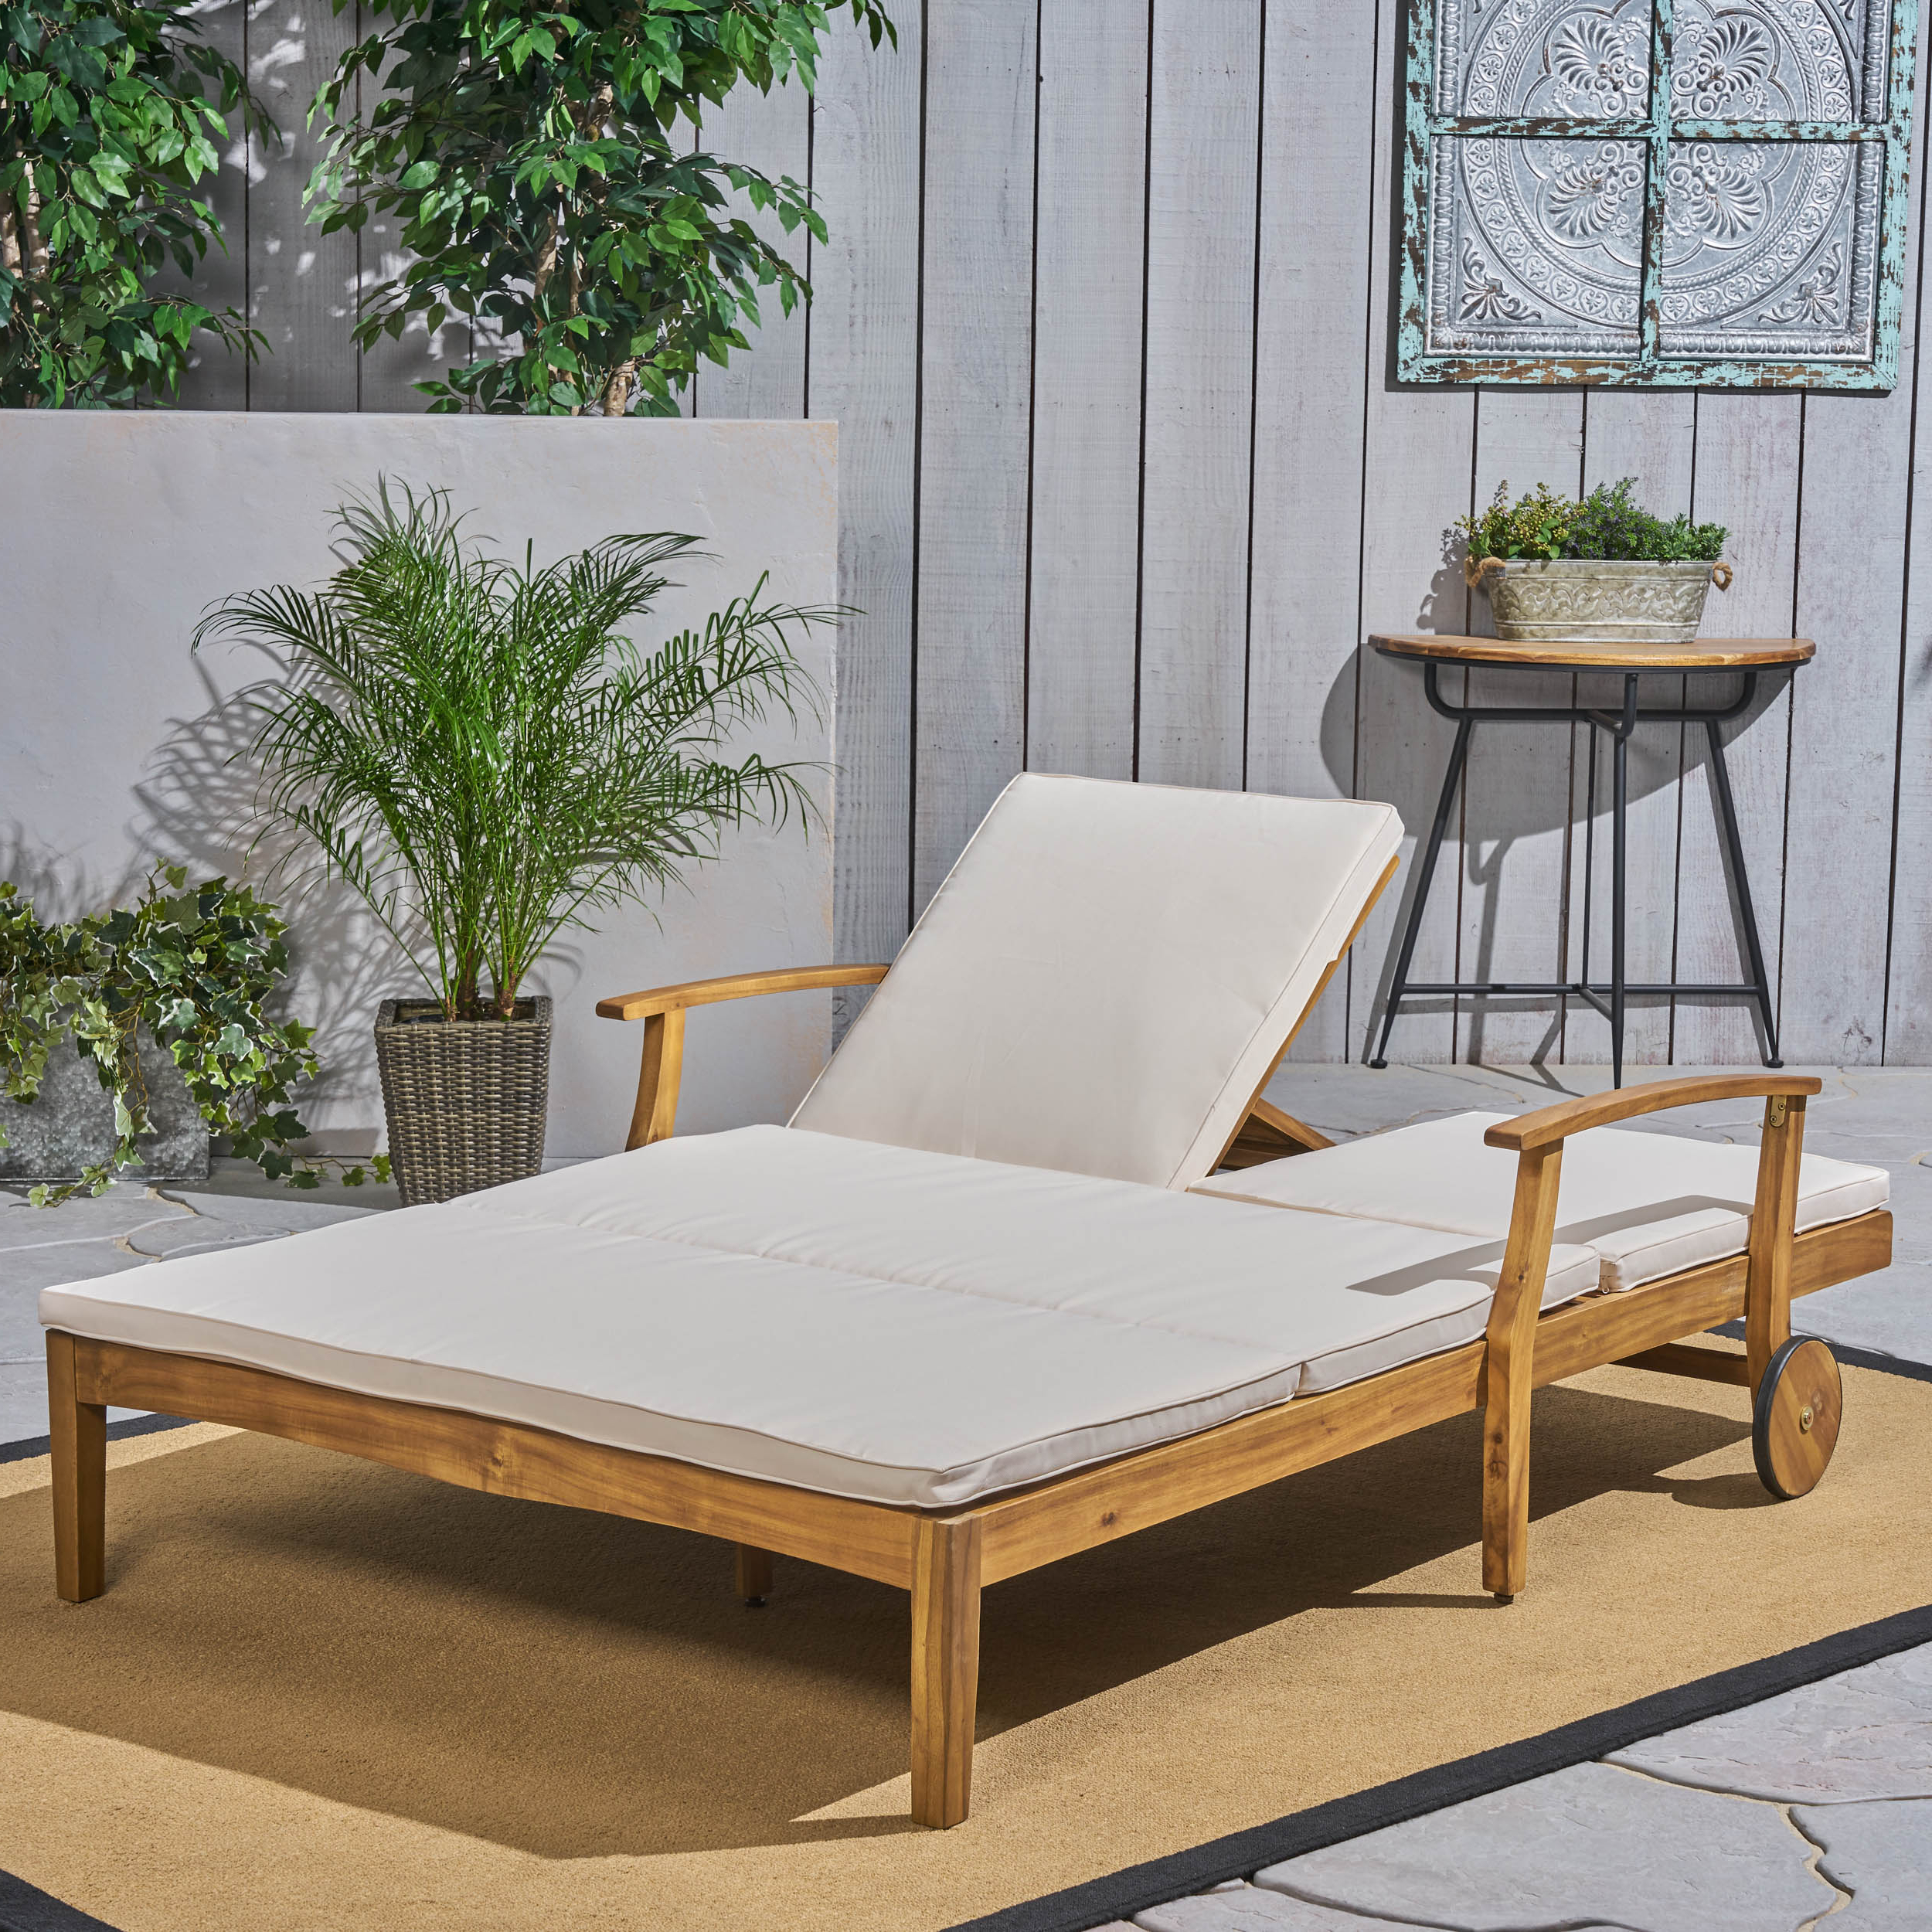 Well Known Outdoor Acacia Wood Chaise Lounges With Cushion In Danielle Outdoor Acacia Wood Double Chaise Lounge With Cushion, Teak, Cream (View 12 of 25)